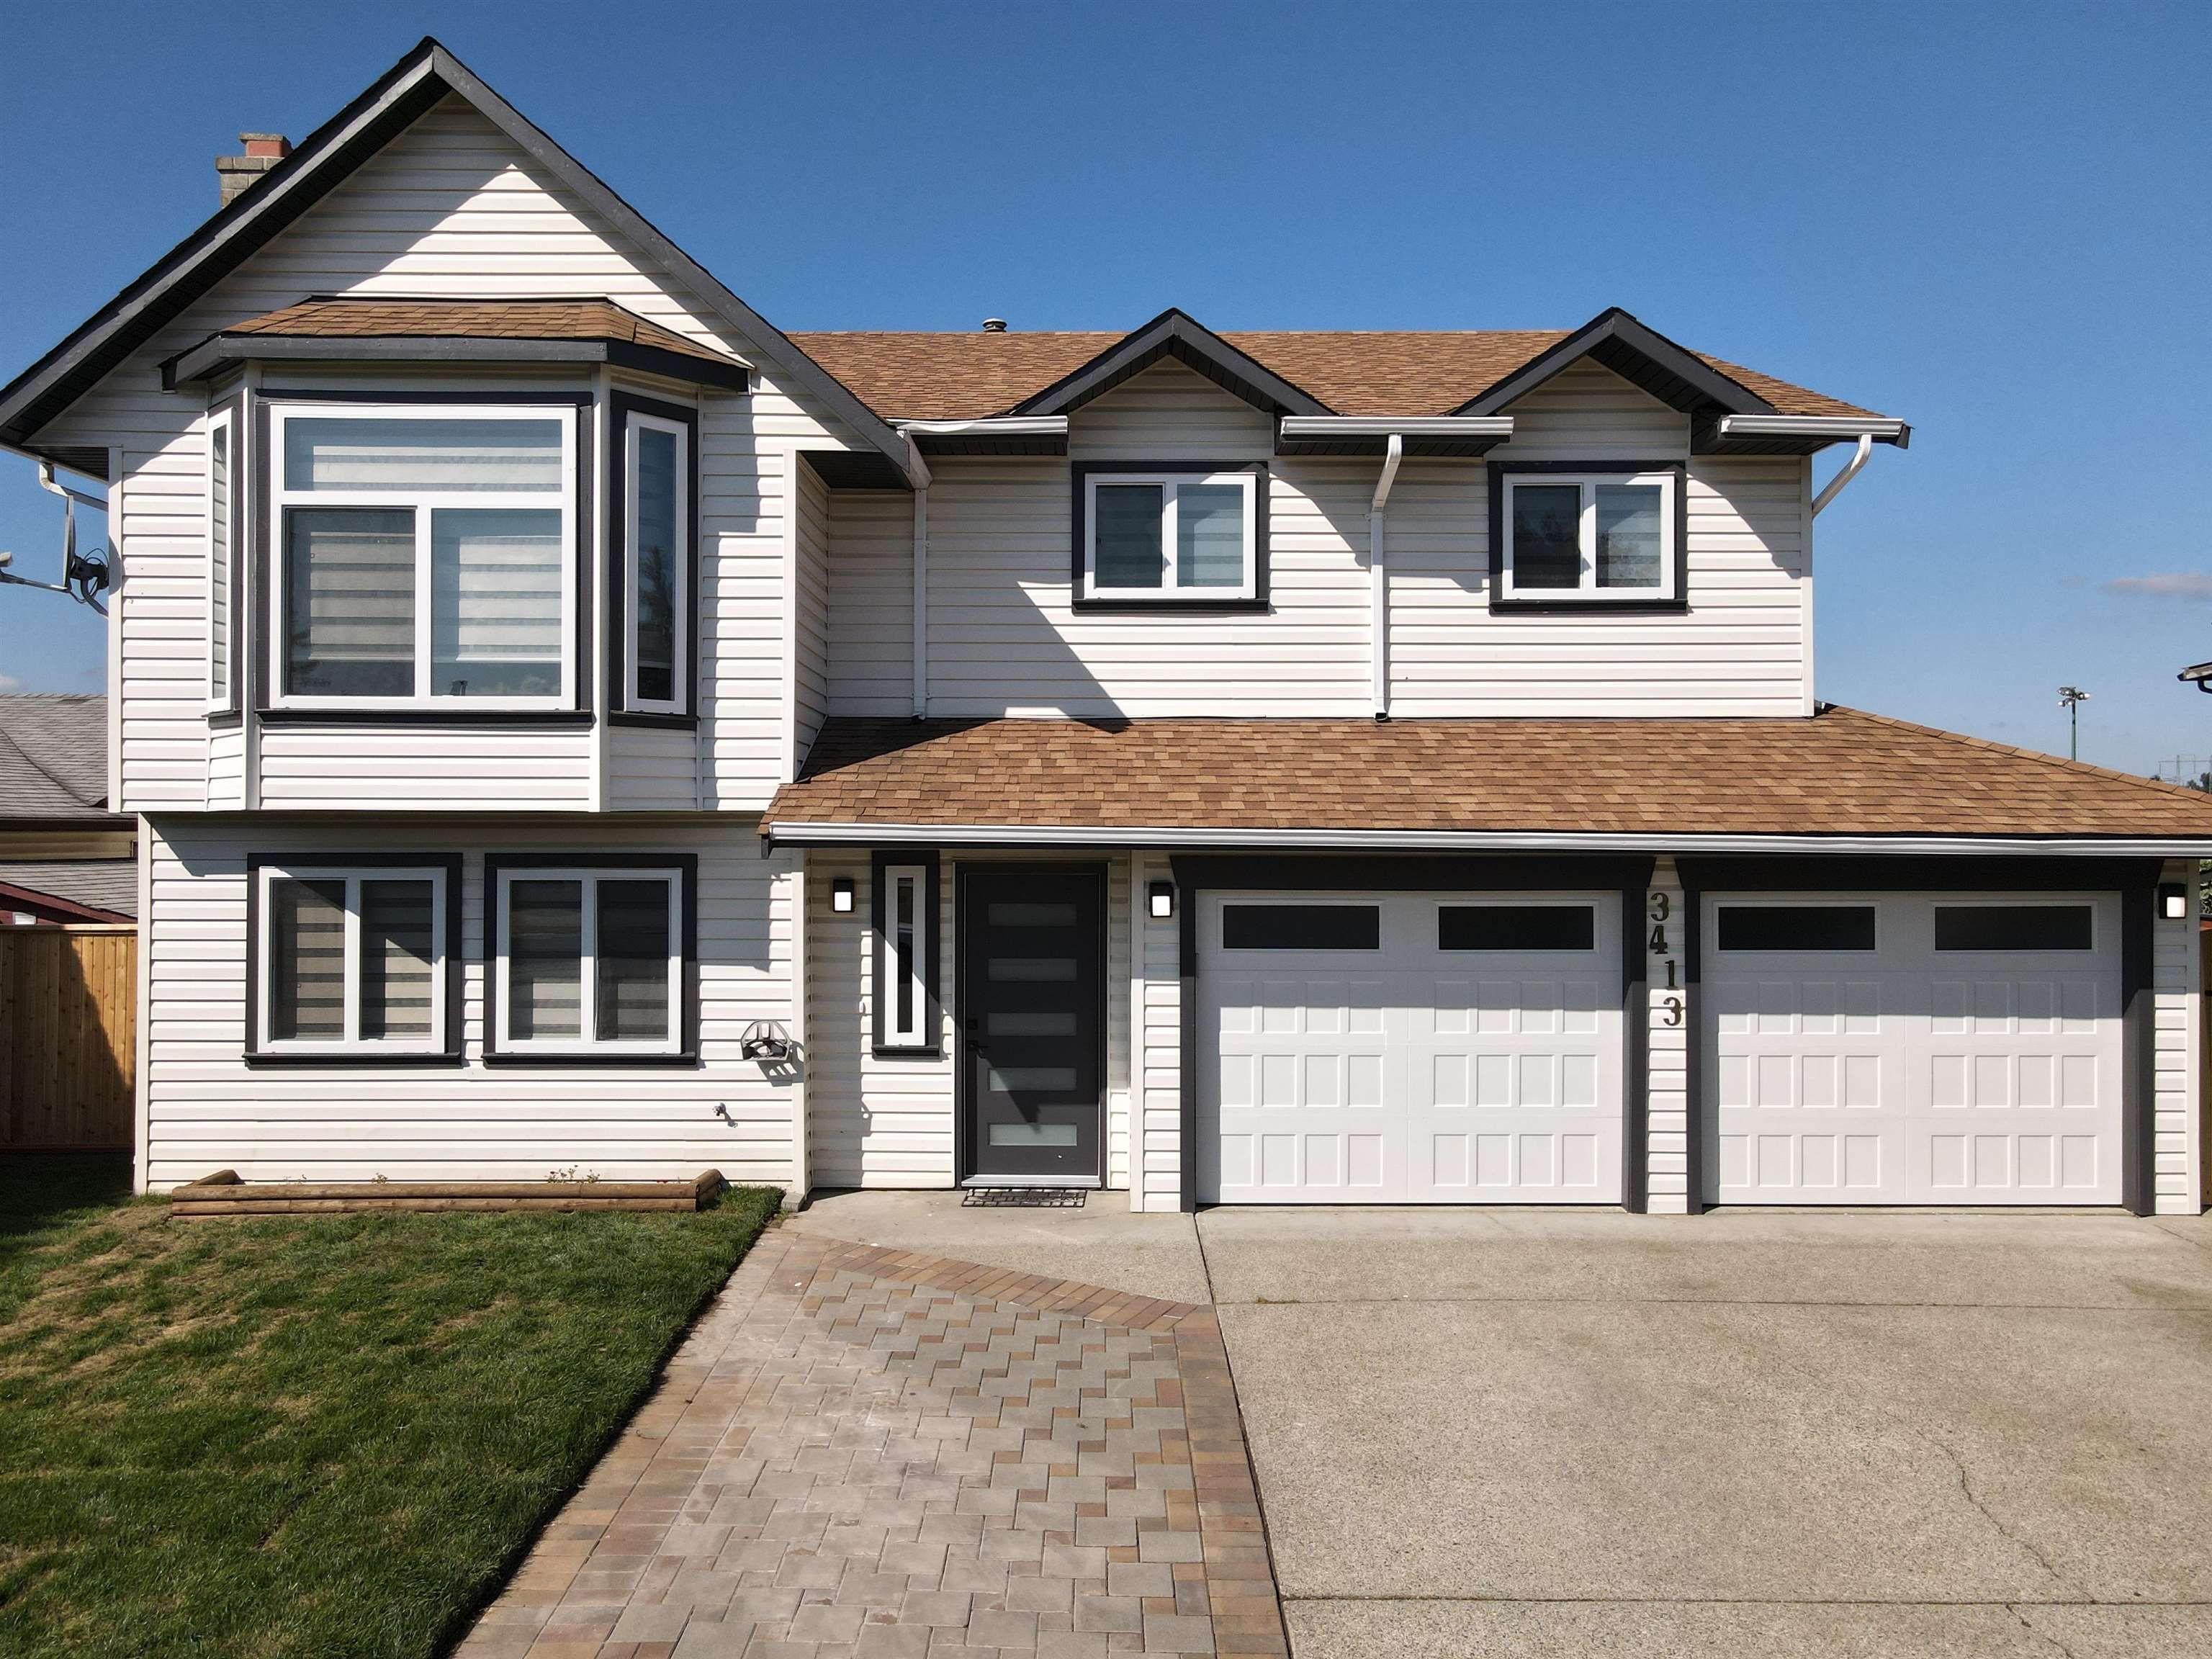 Main Photo: 3413 OKANAGAN Drive in Abbotsford: Abbotsford West House for sale : MLS®# R2613631